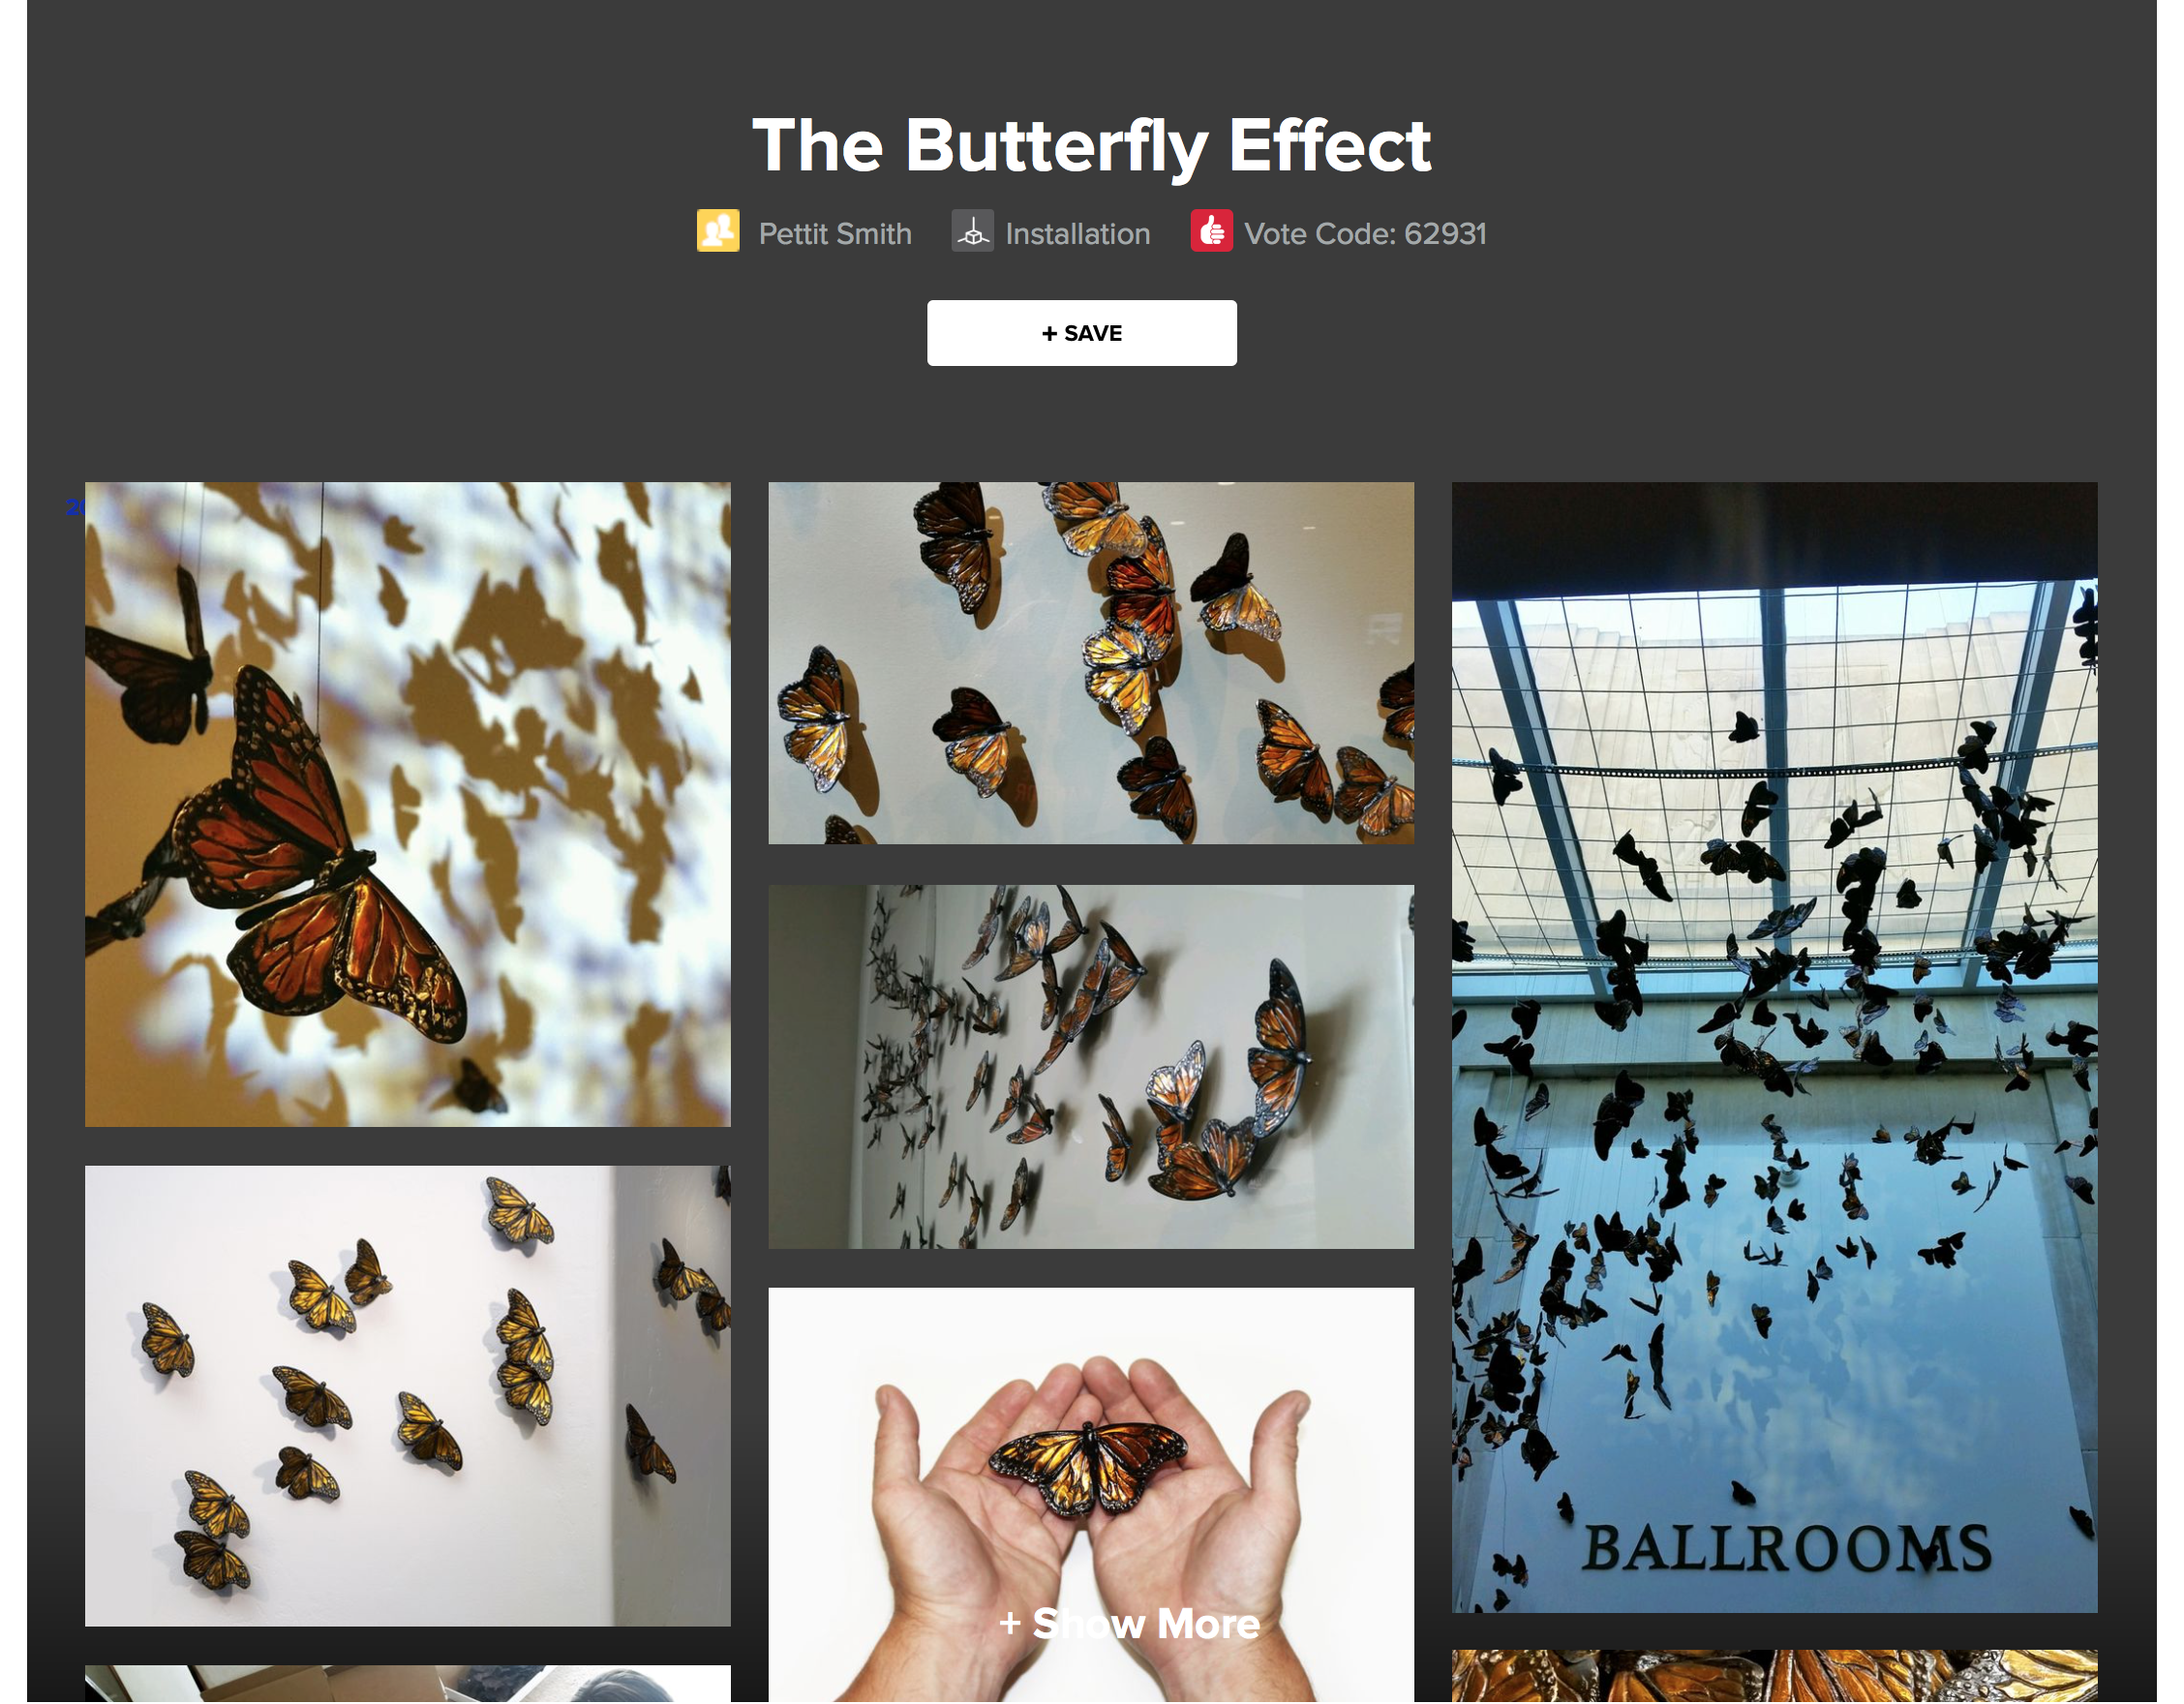 Many of you have asked for a link to see photos of The Butterfly Effect since it won Best Installation at ArtPrize 2016. Please click this preview image to open our ArtPrize page which will remain up until ArtPrize 2017 begins.